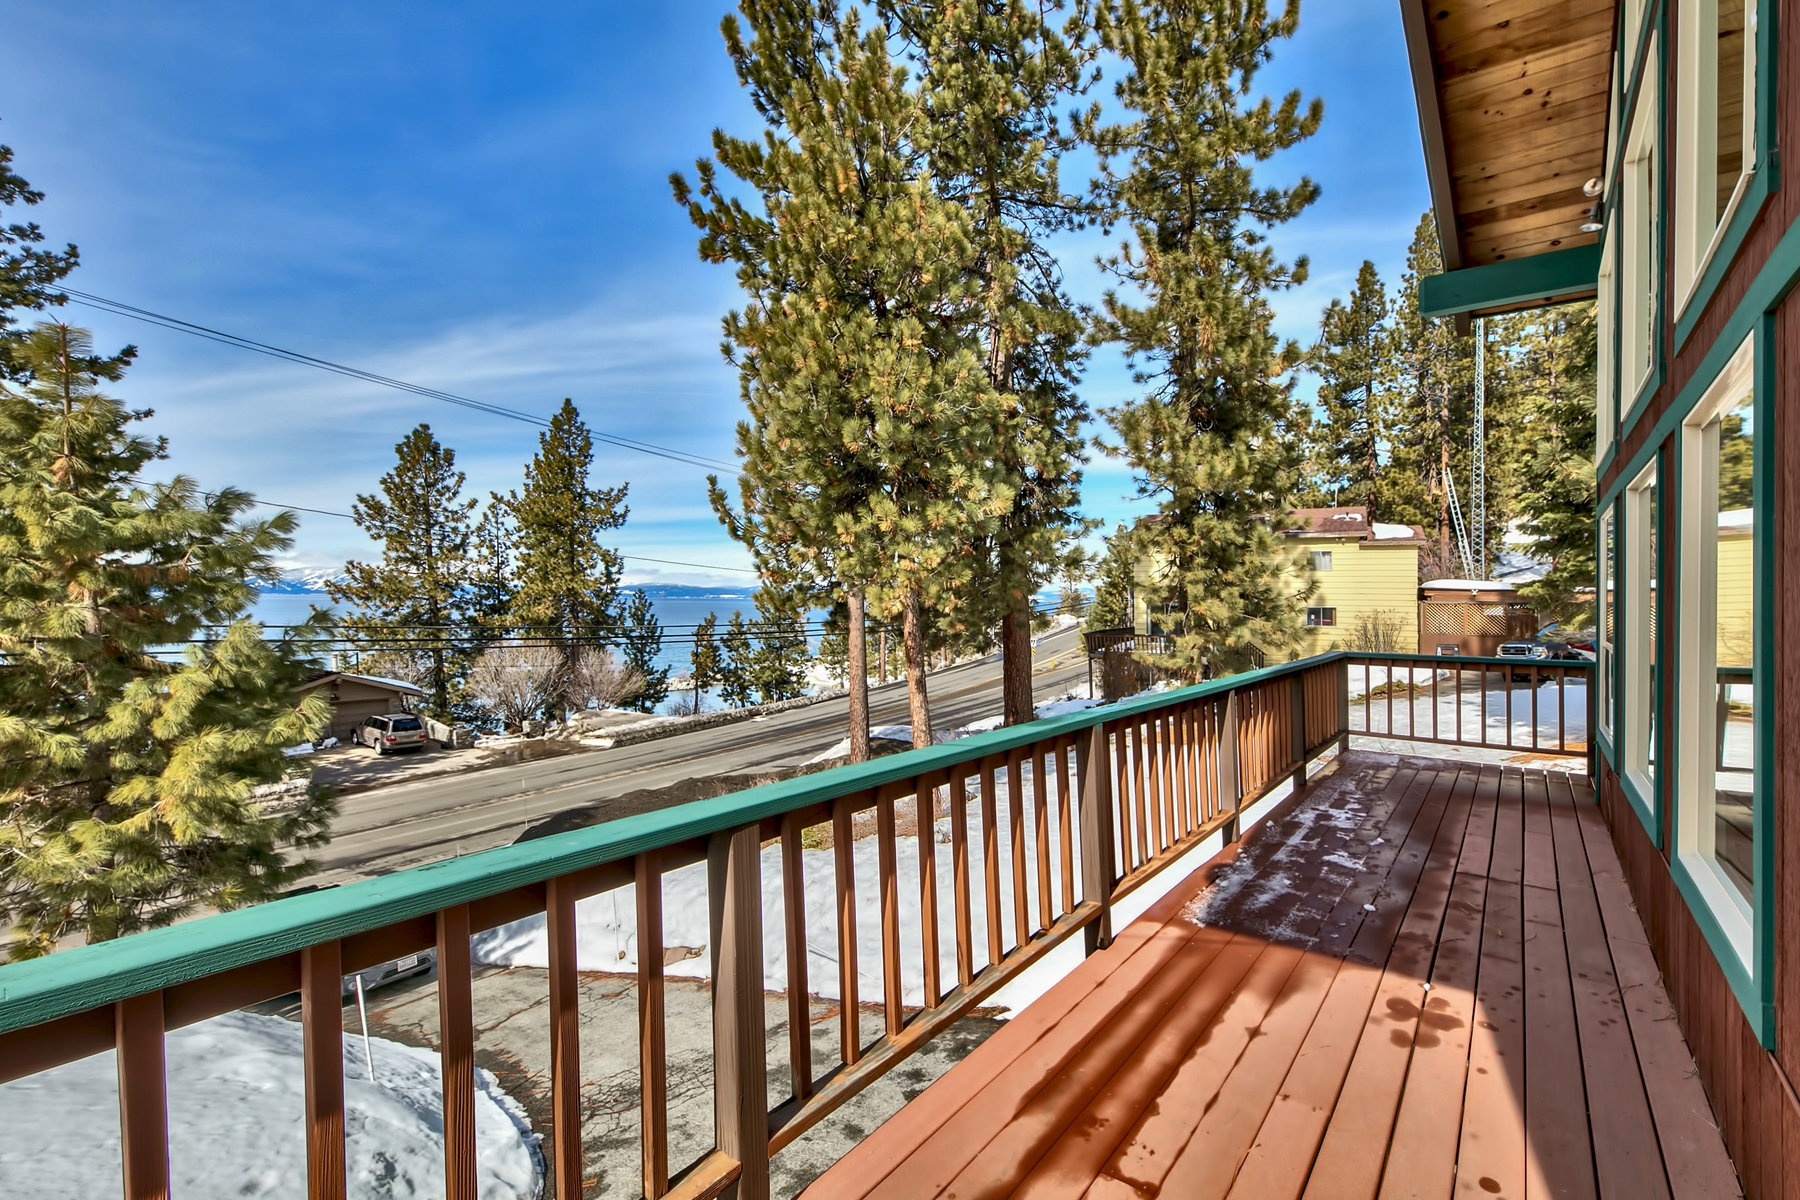 Additional photo for property listing at 1315 US Highway 50, Glenbrook, NV 1315 US Highway 50 Glenbrook, Nevada 89413 United States